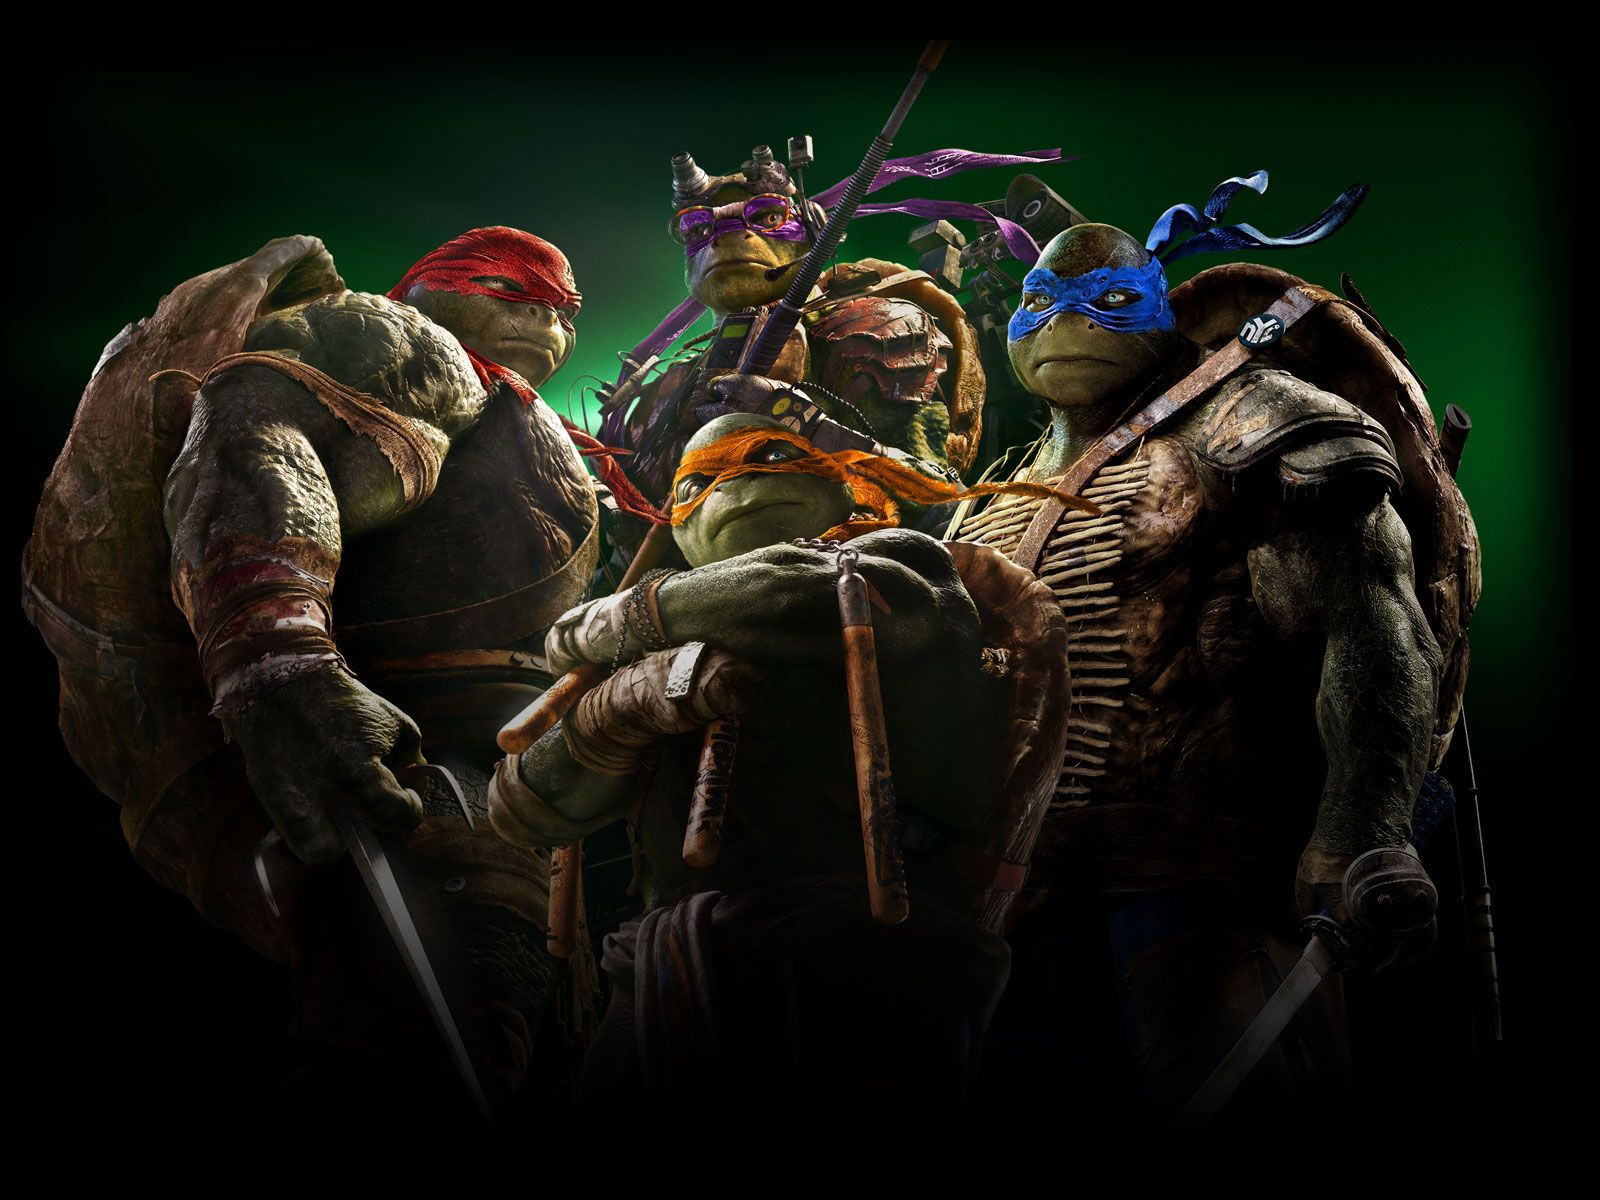 Teenage Mutant Ninja Turtles Wallpaper Collection For Free